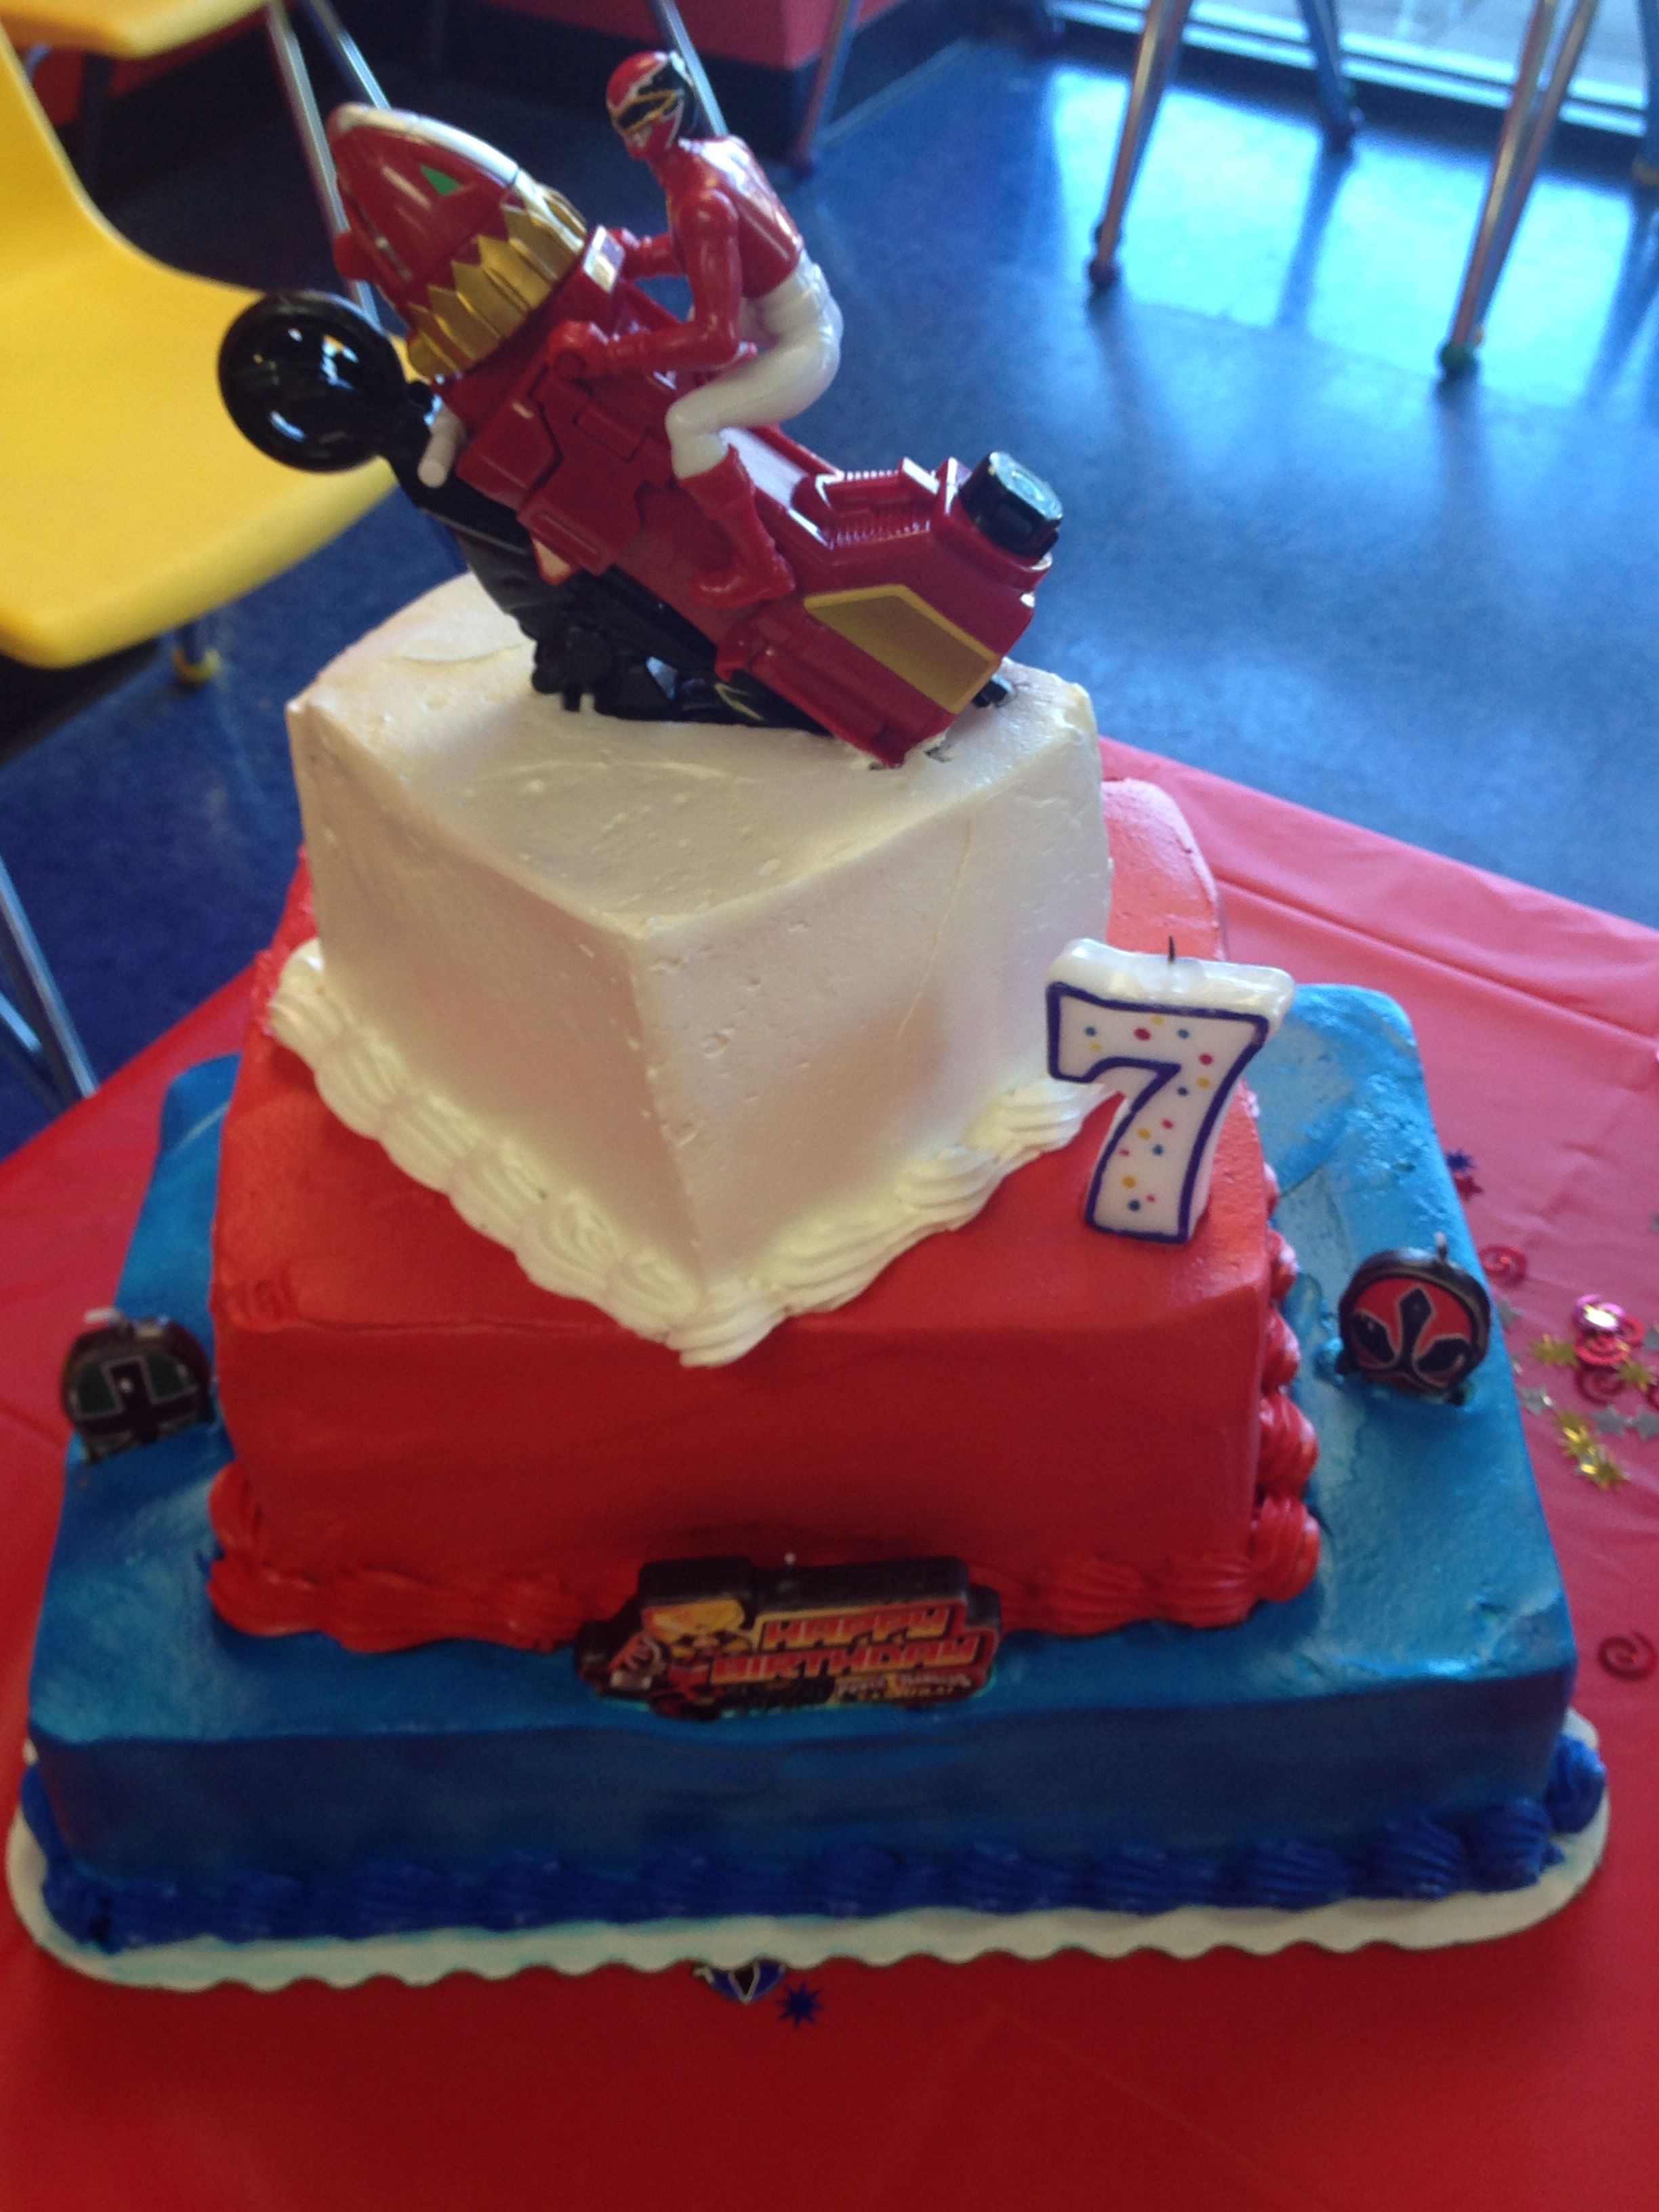 Power Rangers Birthday Cake I ordered a cake from HEB purchased